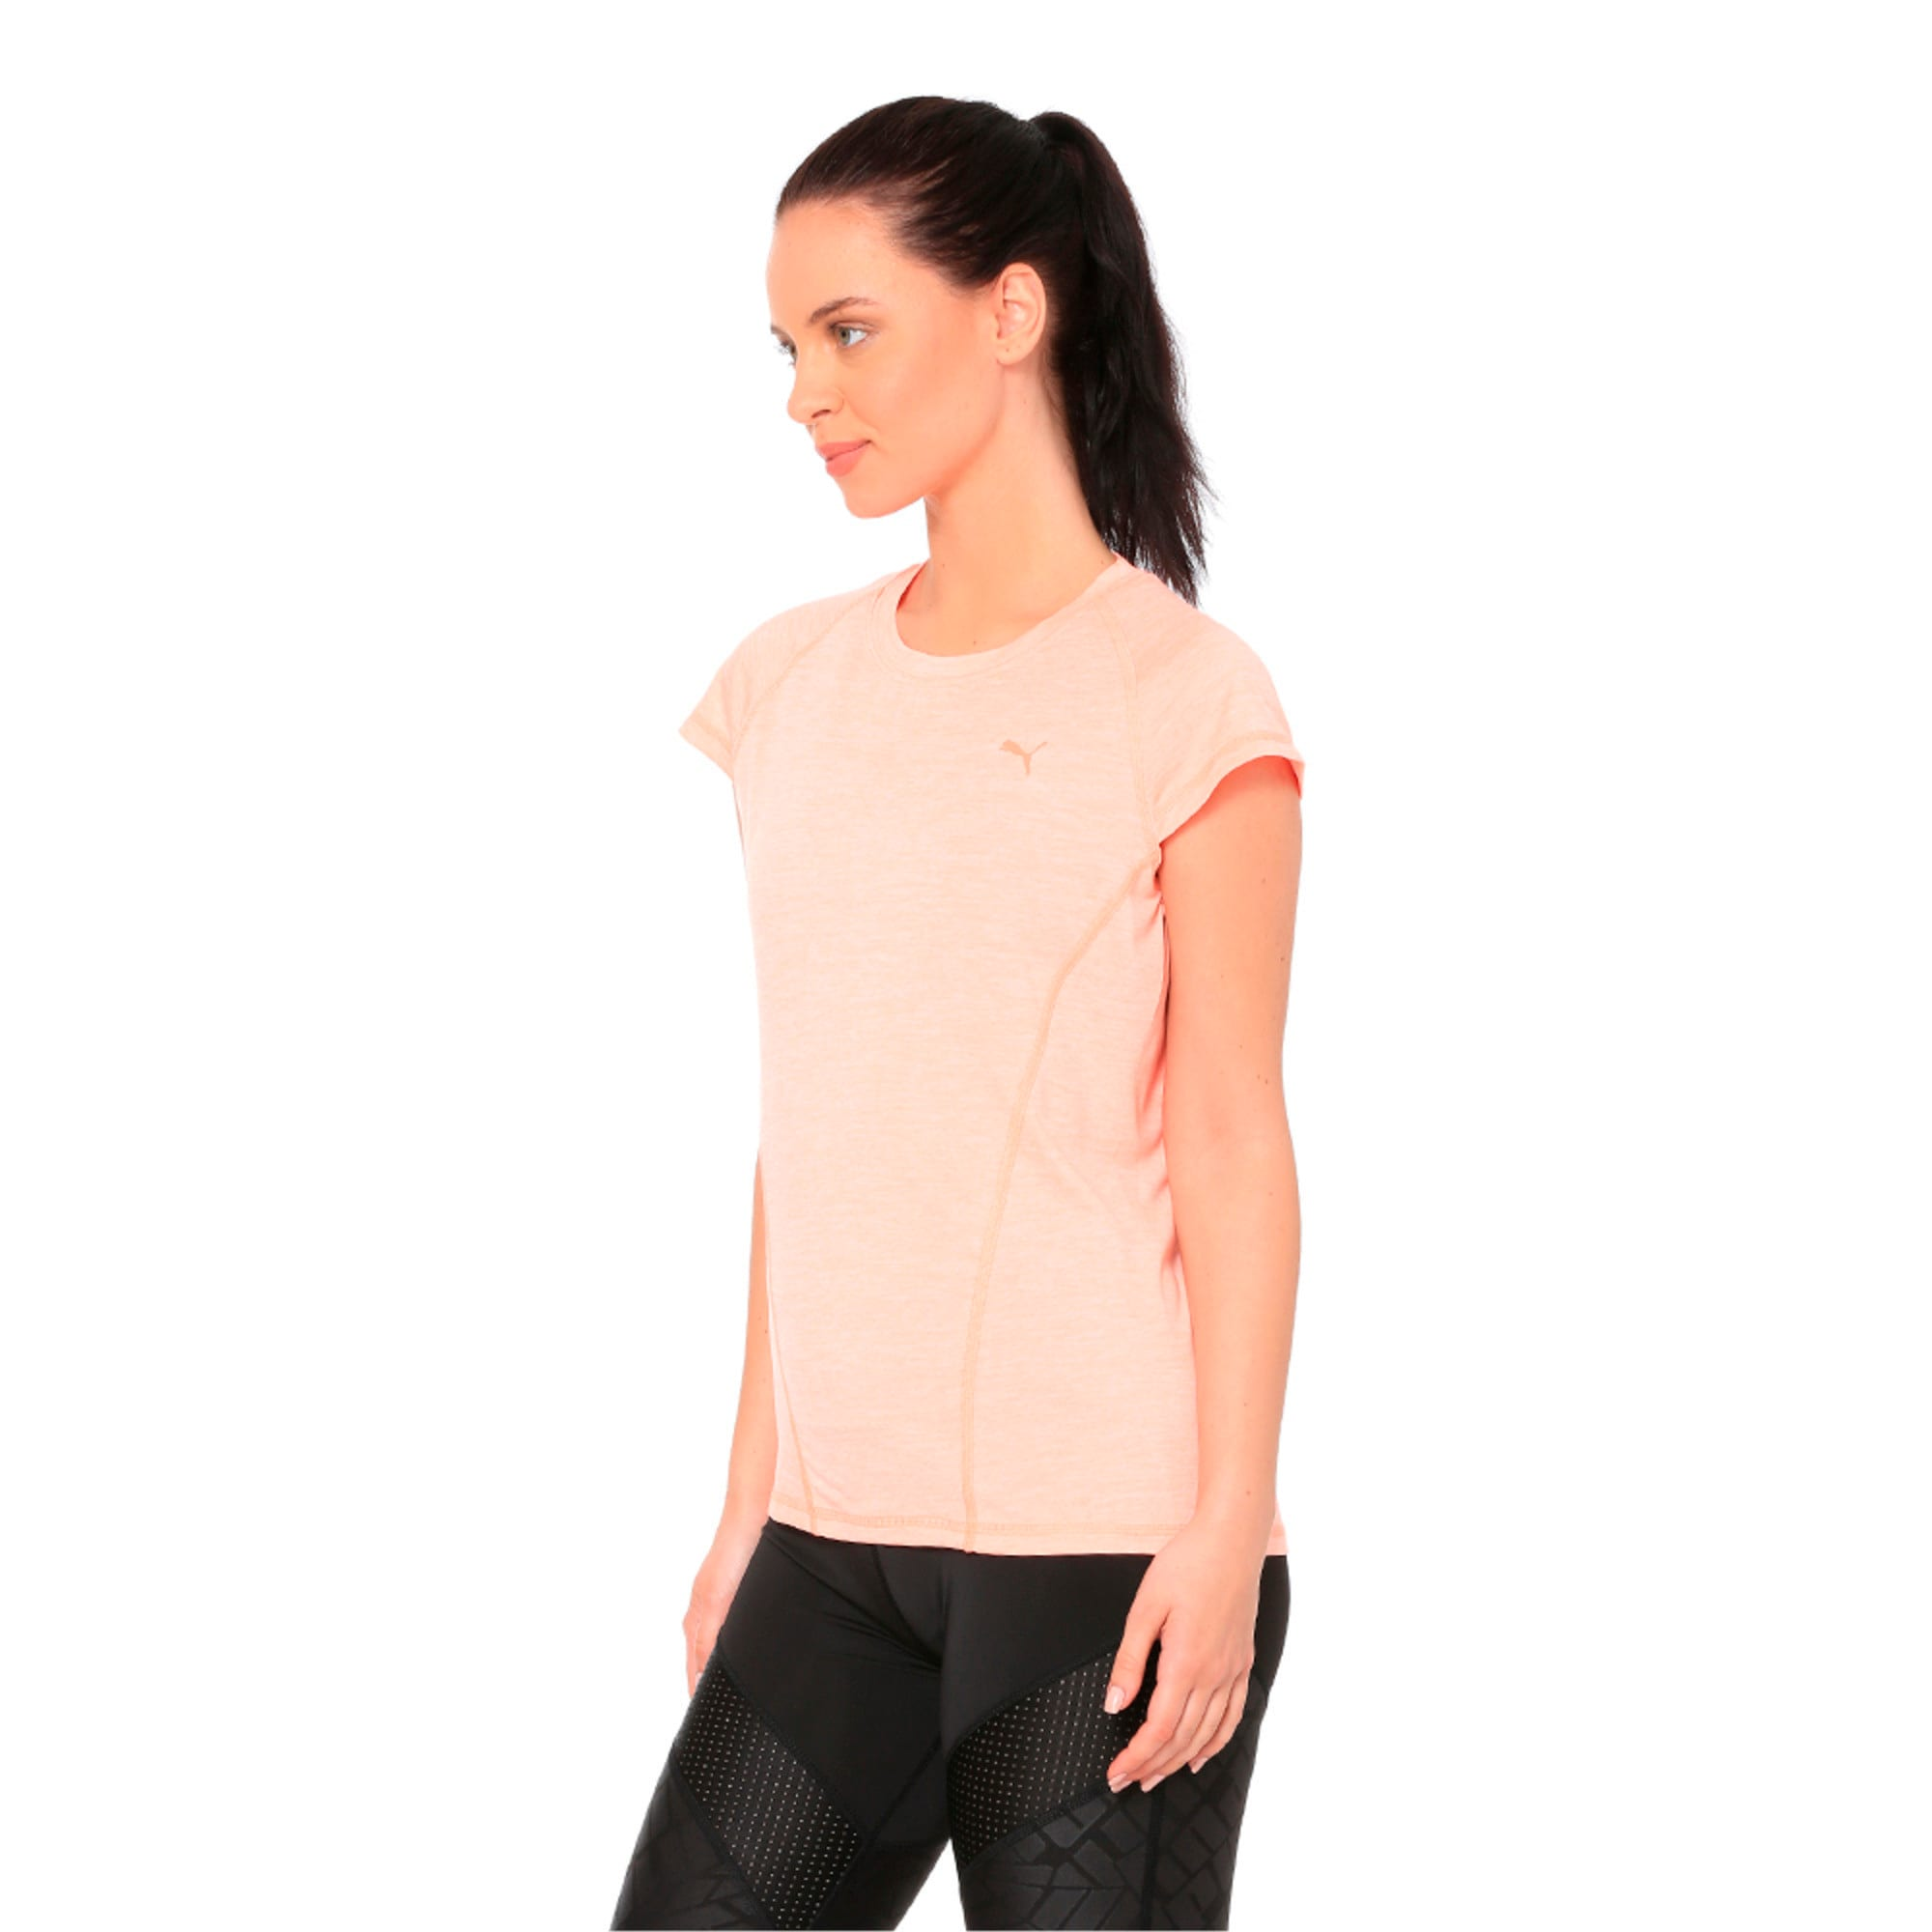 Thumbnail 3 of DeLite Tee, Bright Peach Heather, medium-IND